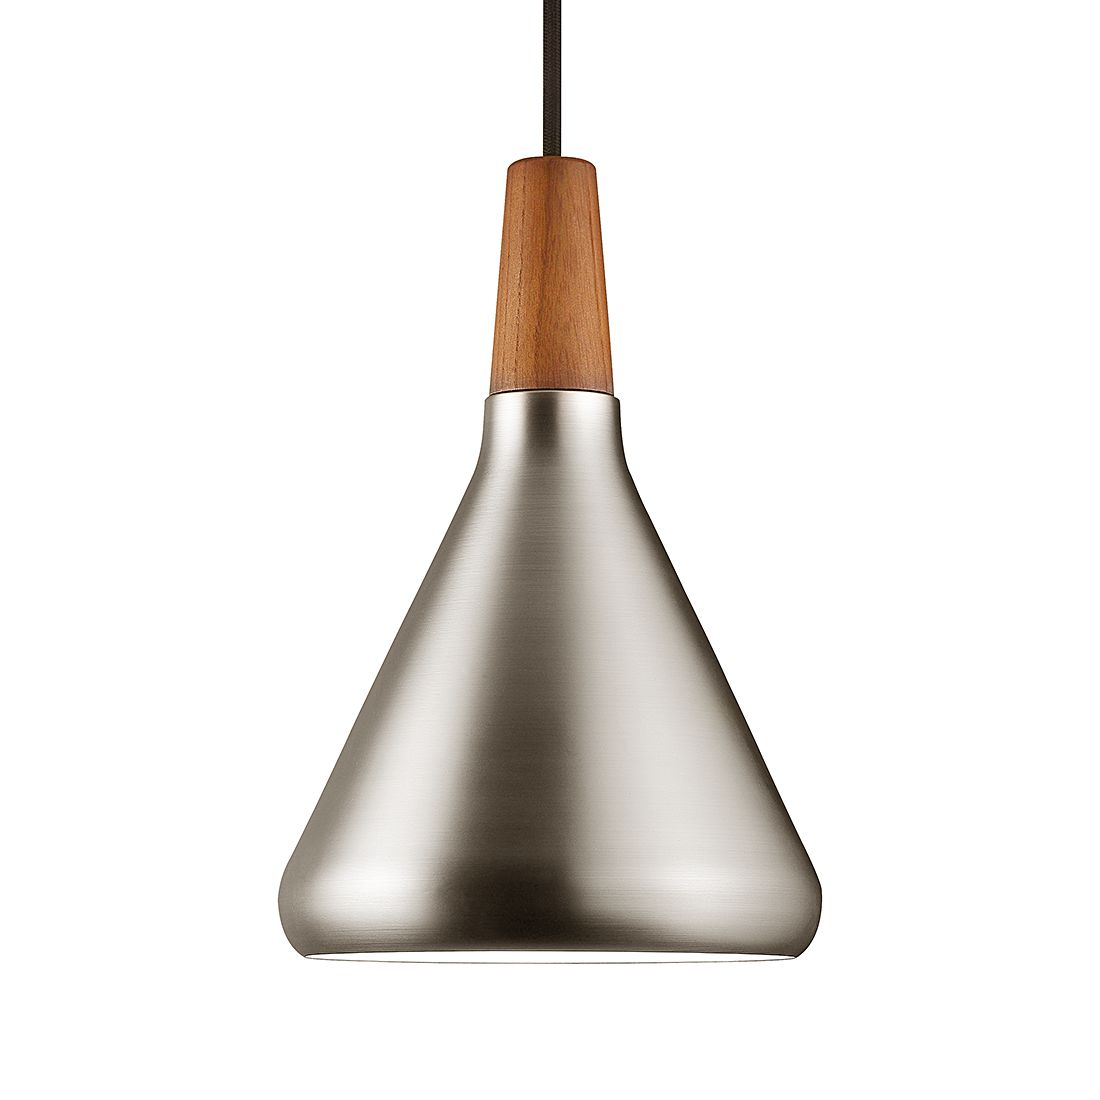 EEK A++, Pendelleuchte Float 18 - Metall - Silber - 1-flammig, Nordlux